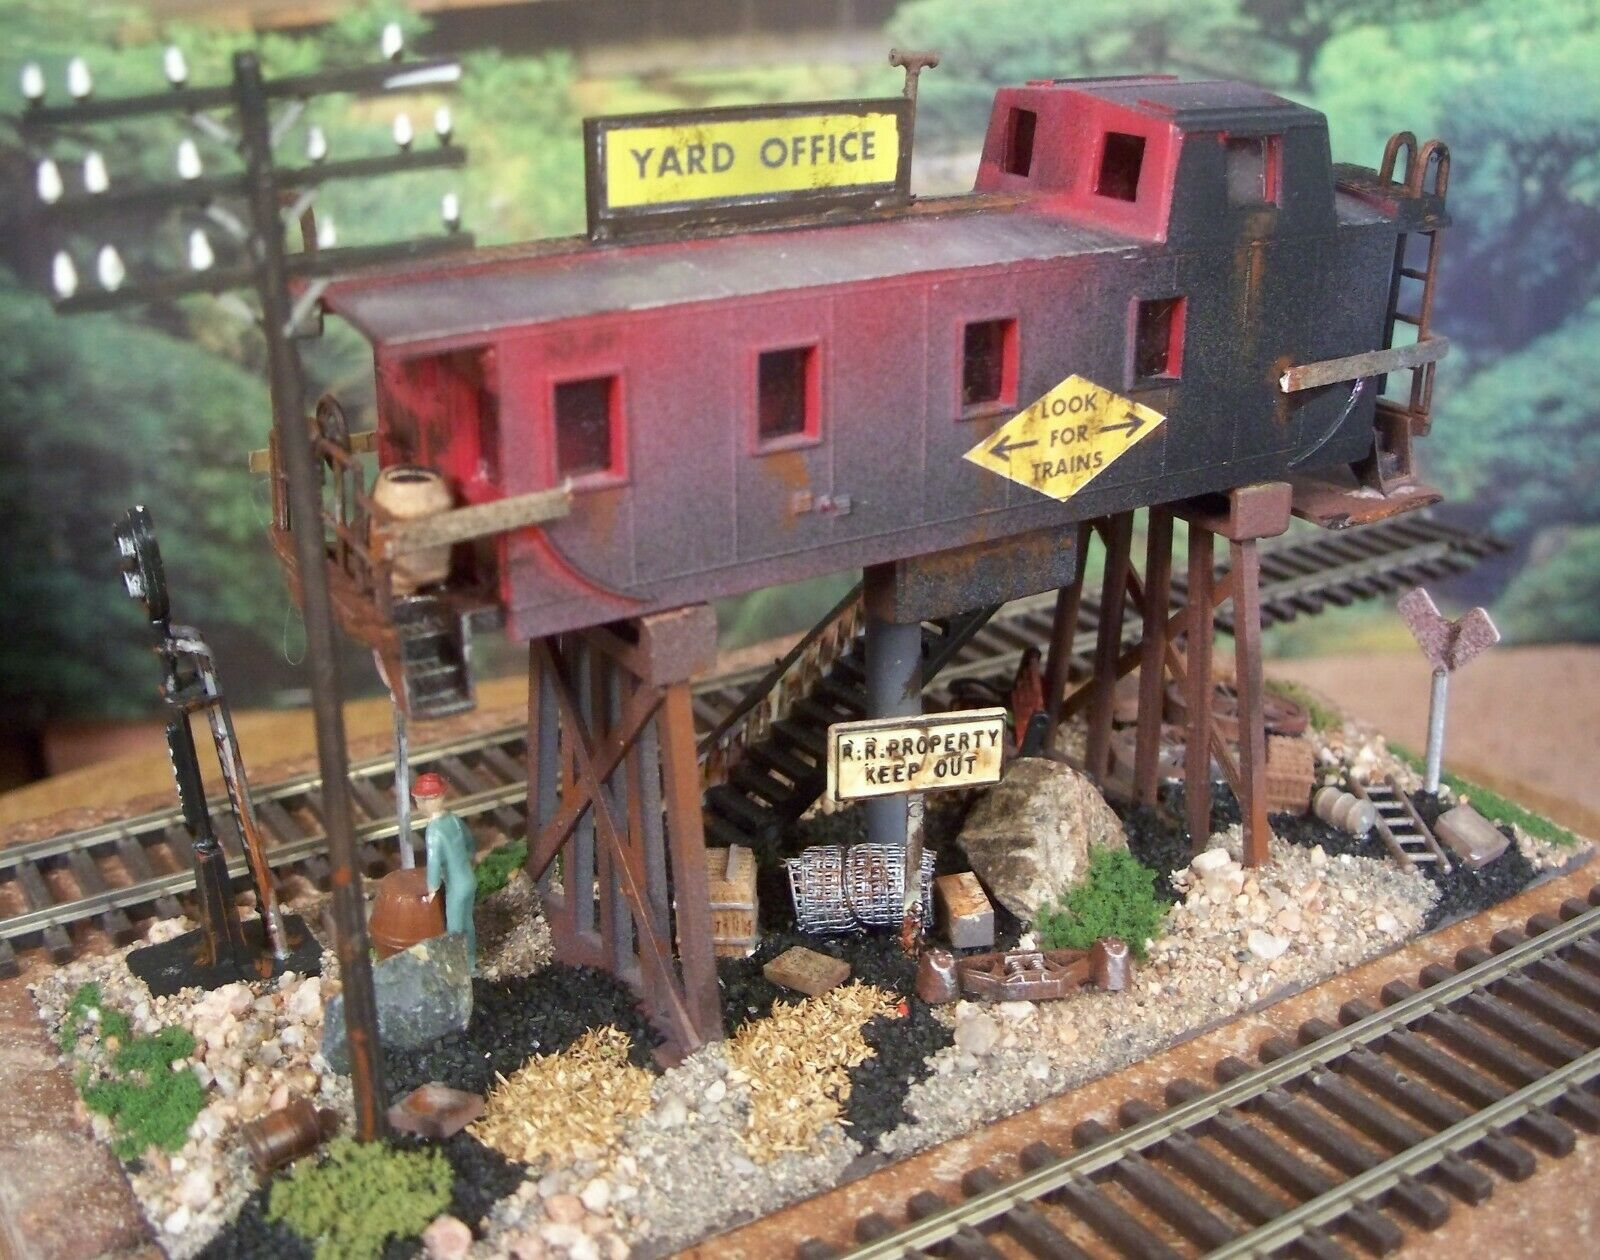 HO HAND WEATHERED & BUILT CABOOSE SCRAP YARD OFFICE DIORAMA BUILDING ON TRESTLES